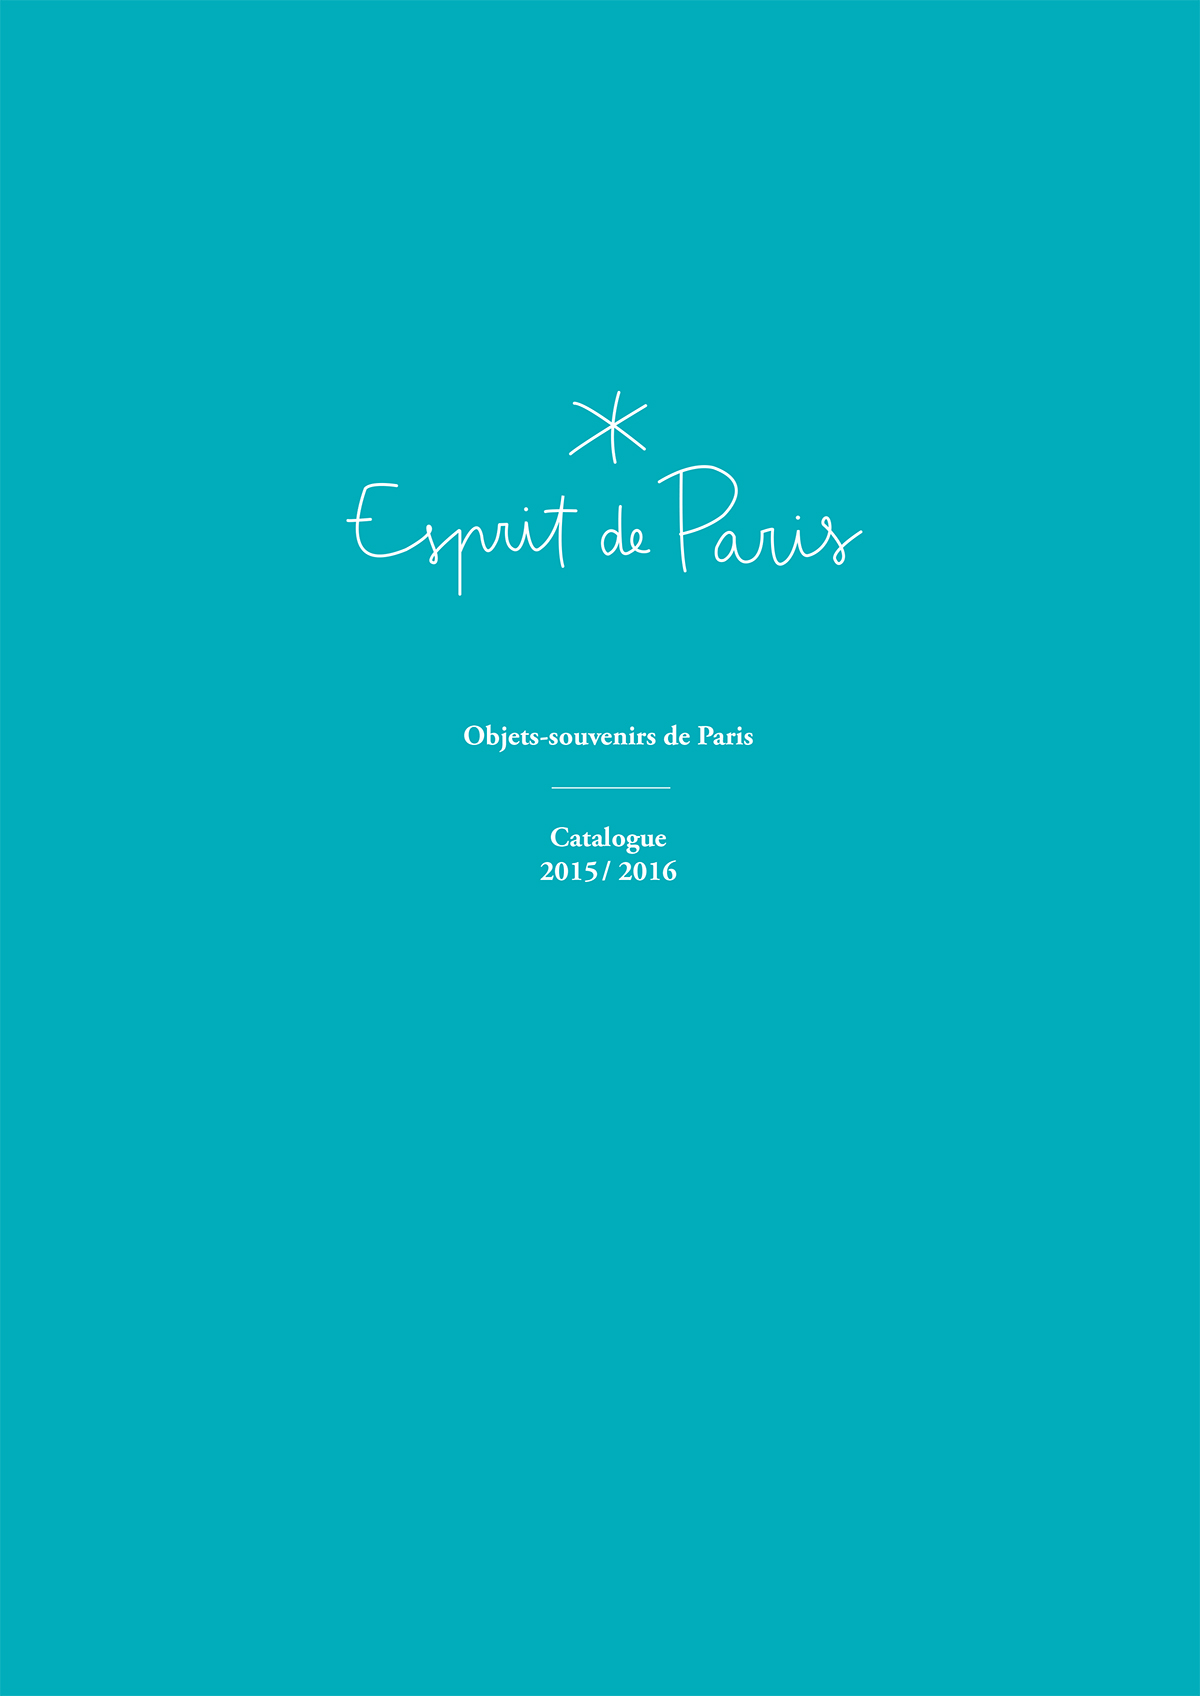 Couverture de Catalogue Esprit de Paris